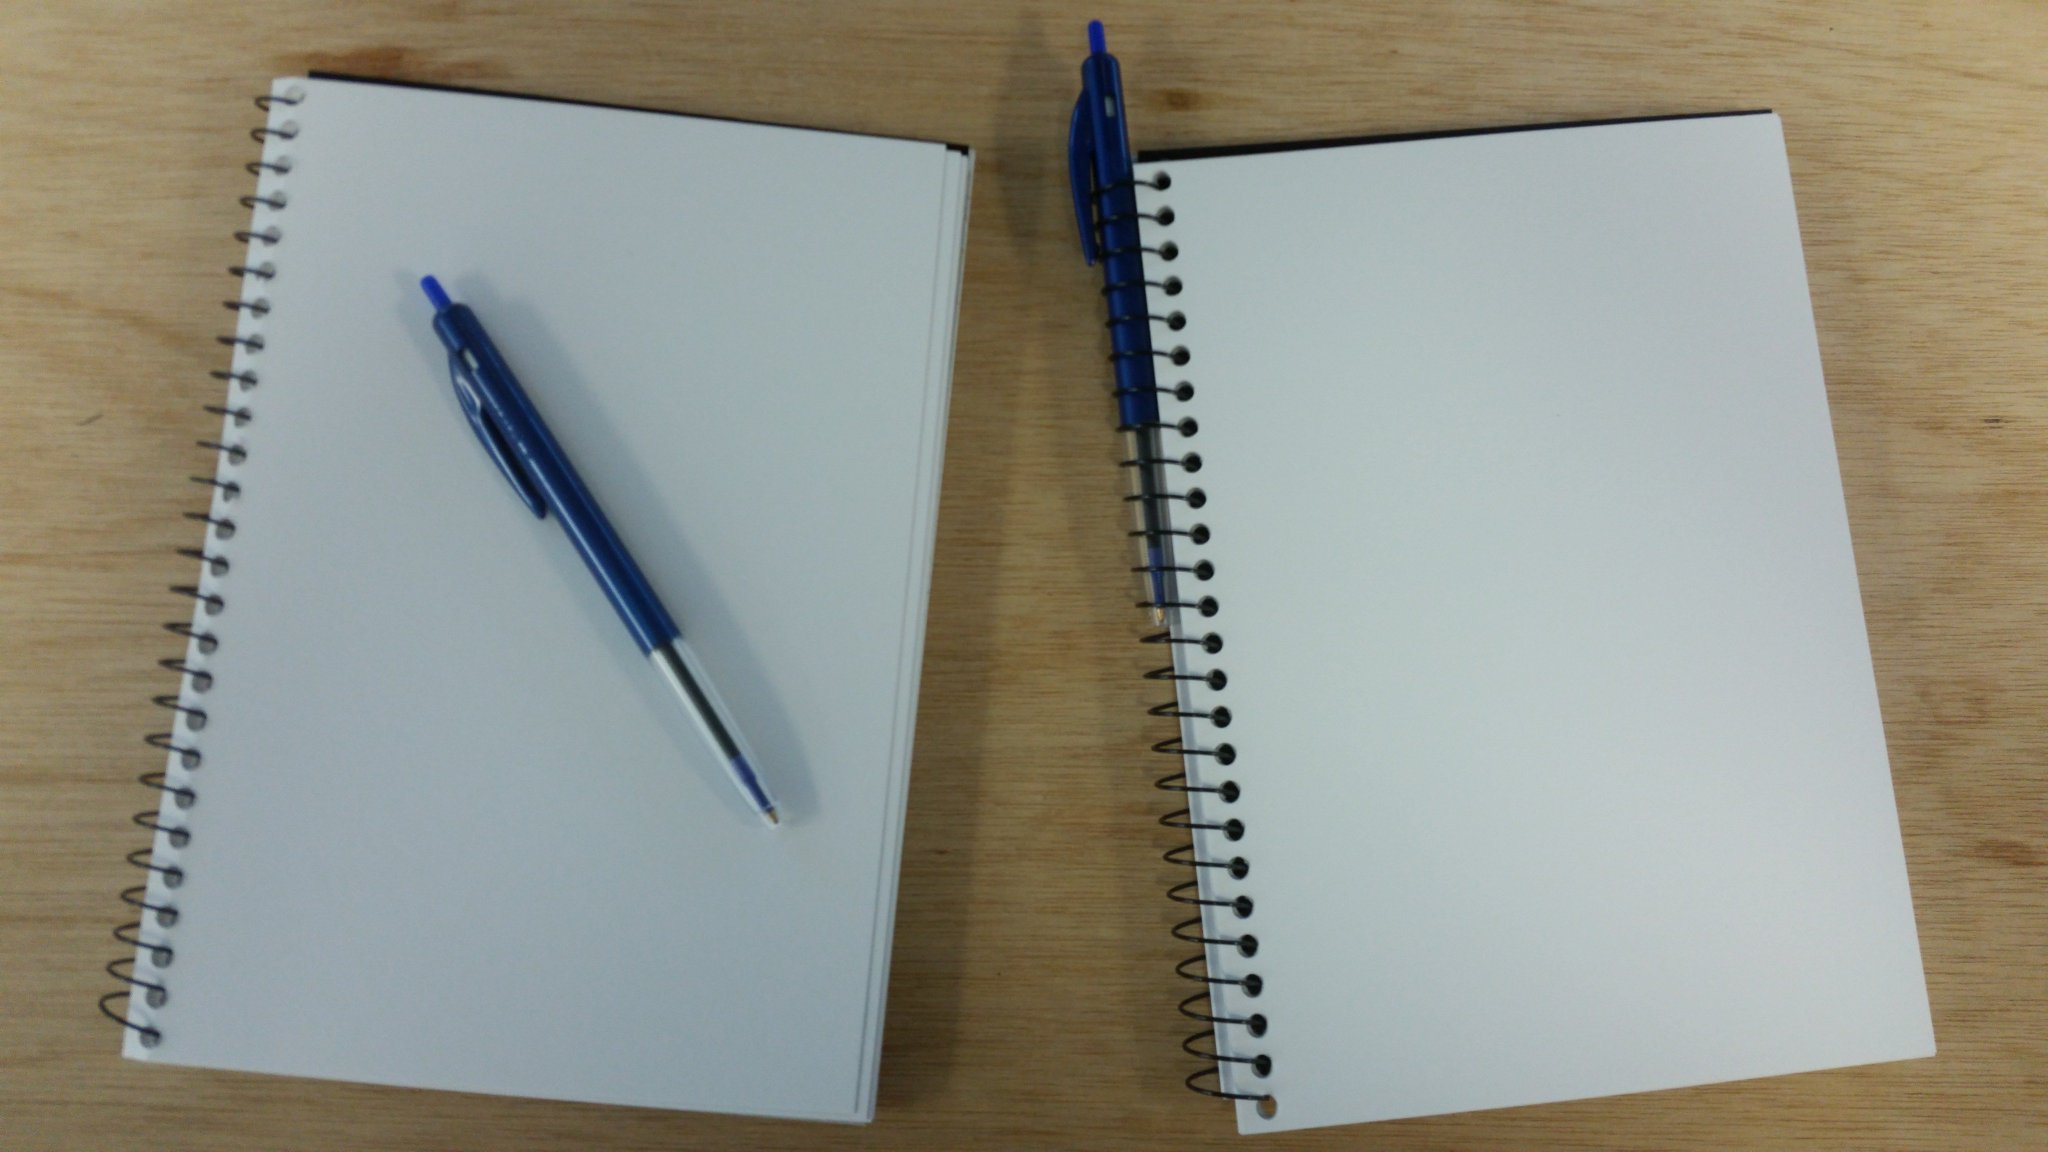 $5 for two notebooks + pens -